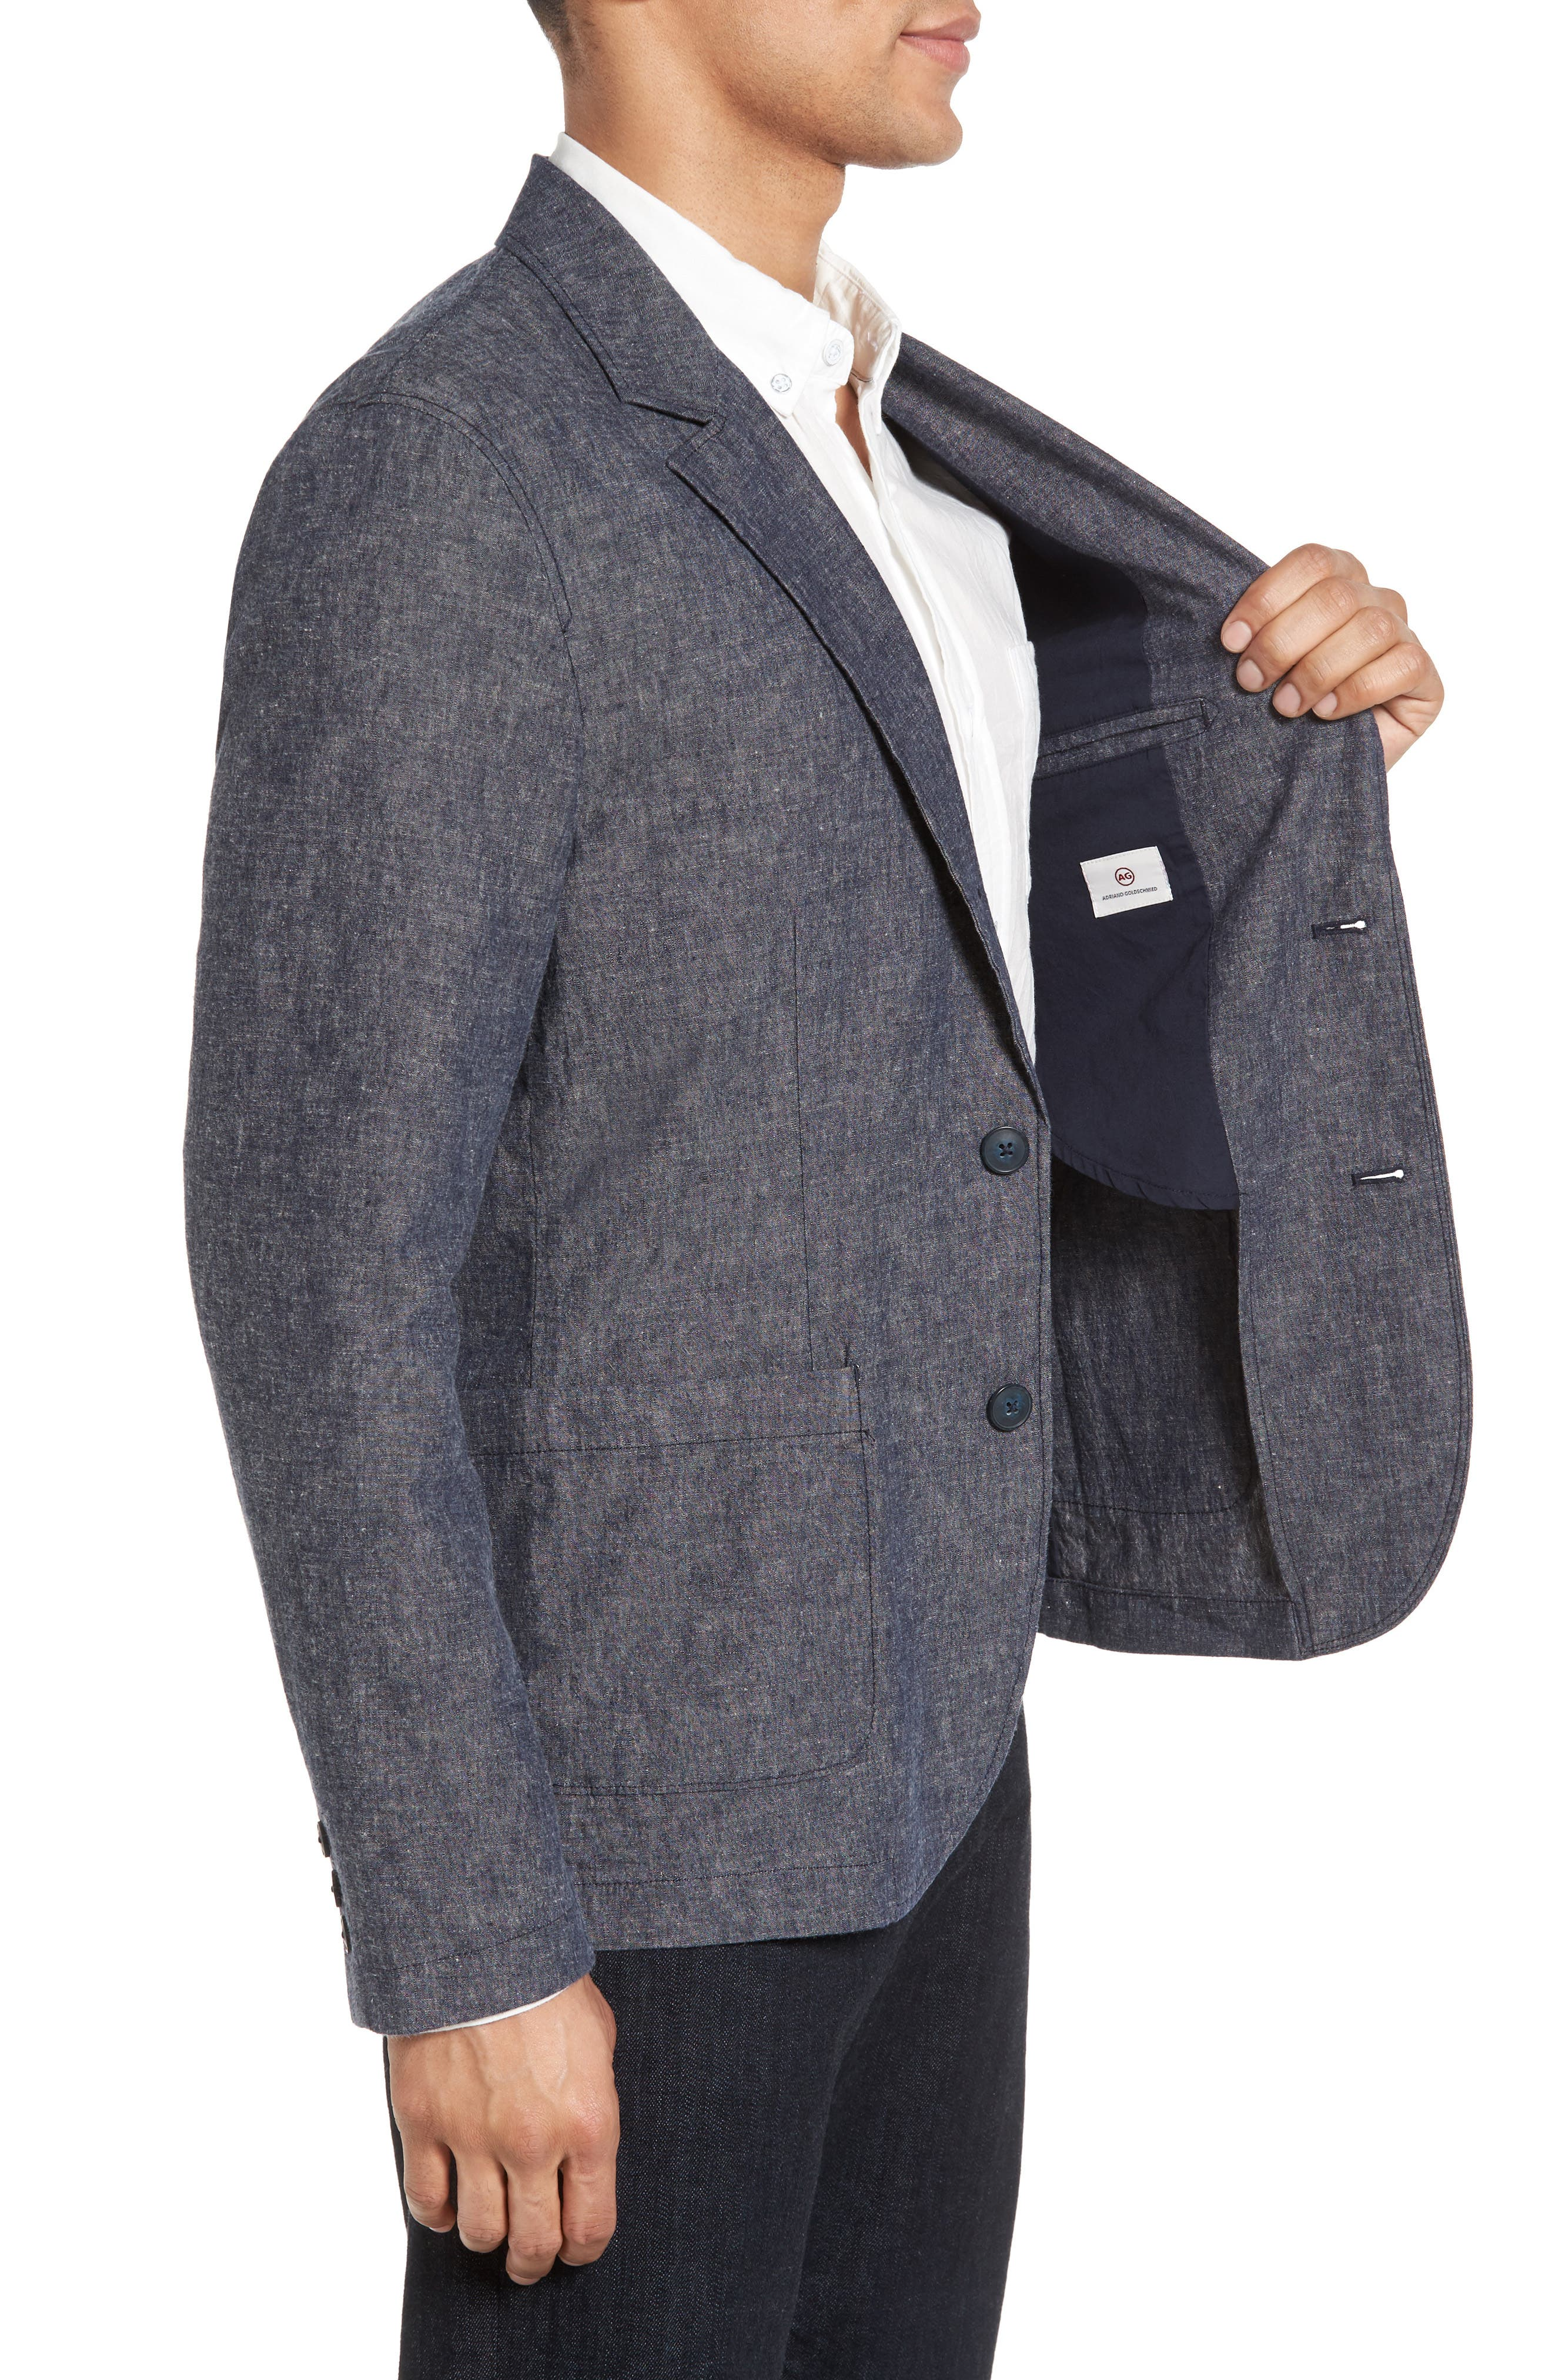 Trunnel Slim Fit Linen Blend Blazer,                             Alternate thumbnail 3, color,                             485